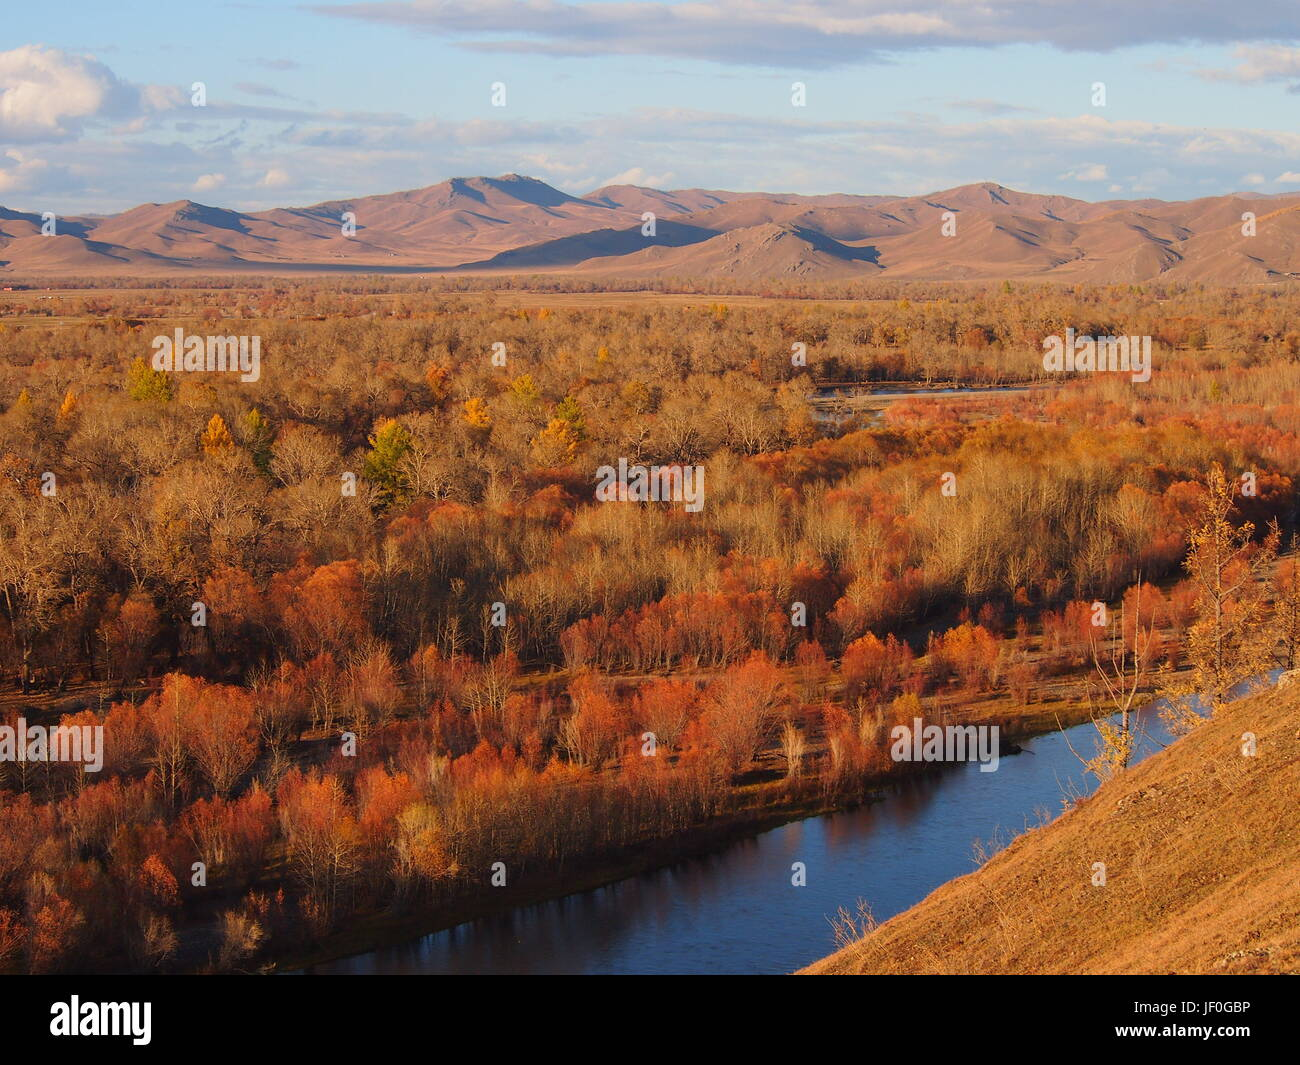 Mongolian landscape and river in Autumn colours - Stock Image